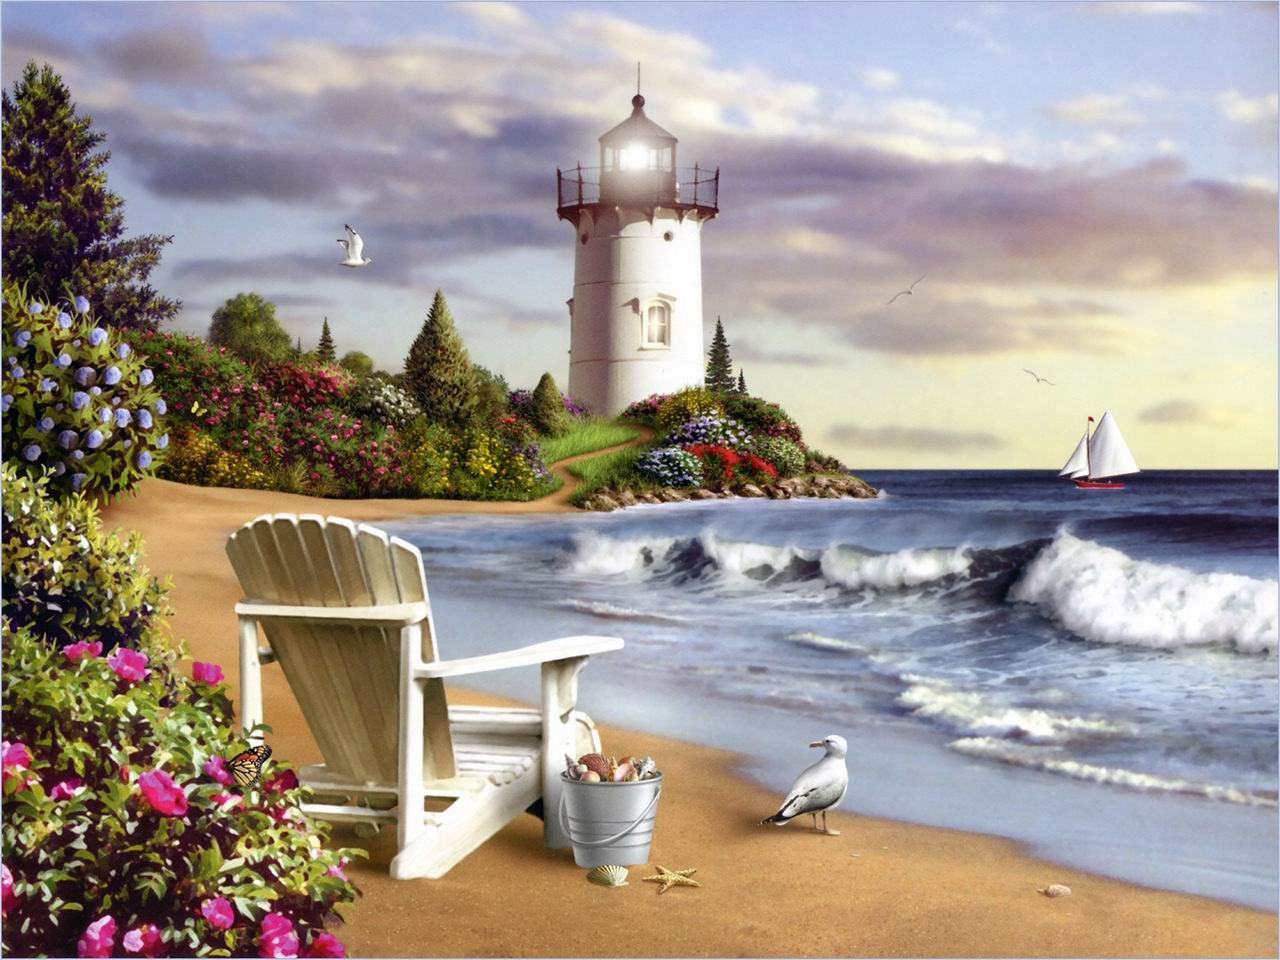 Lighthouses Pictures Lighthouses Wallpaper 1280x9603 Wallpaper 1280x960